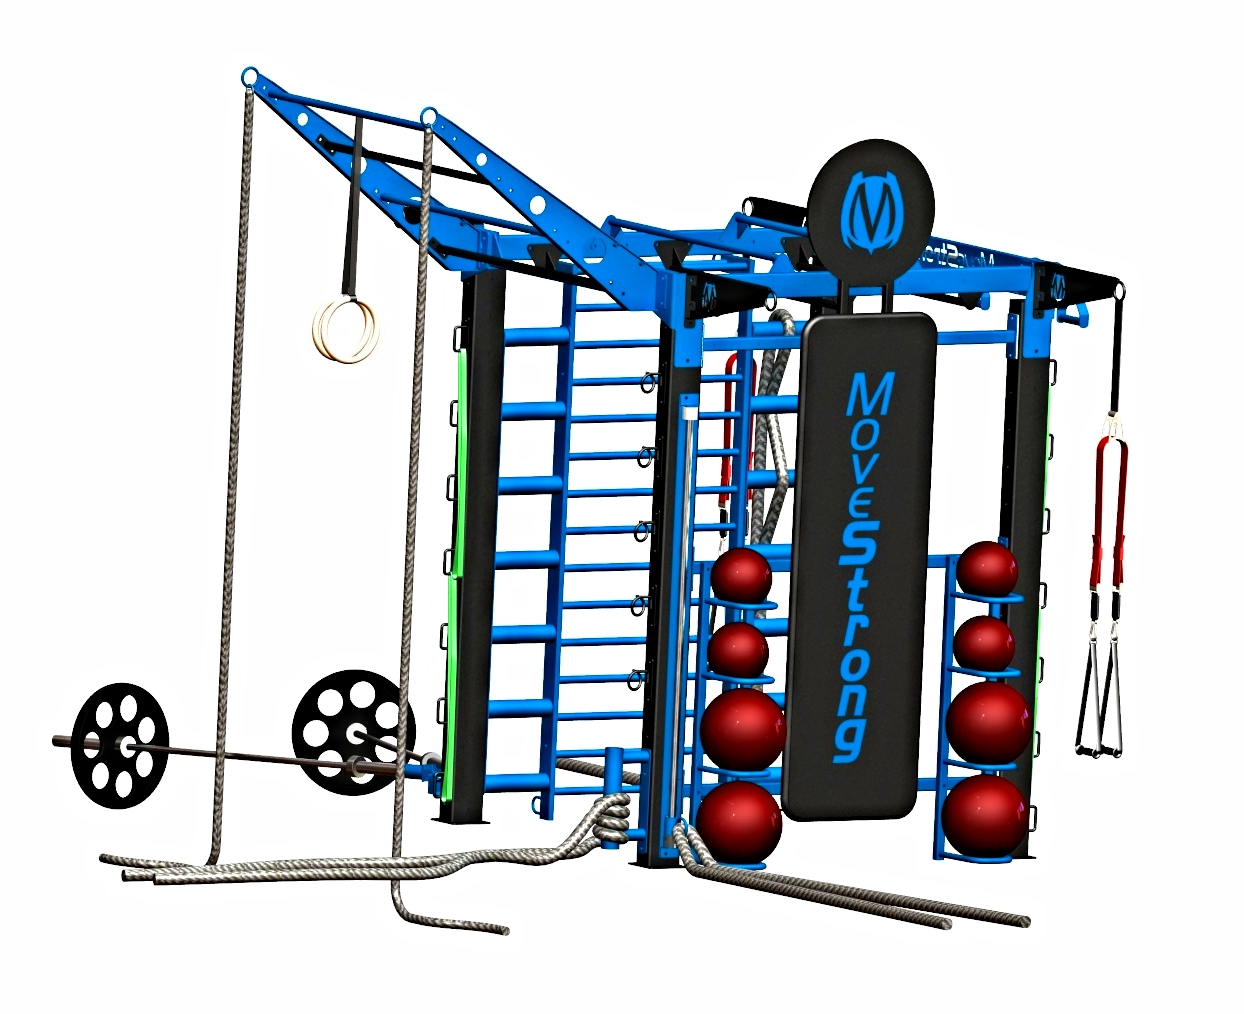 """NOVA-4 FTS with Kickplate, Stall bars, Rope Ladder, Sliding pull-up, G-loops, Suspension hanger, and tiered Climber bars   Storage for medicine balls, dedicated anchors for suspension trainer, climbing ropes, resistance bands  10'7"""" L x 5'7"""" W x 10'4"""" H ( with tiered climber bar at end )*"""